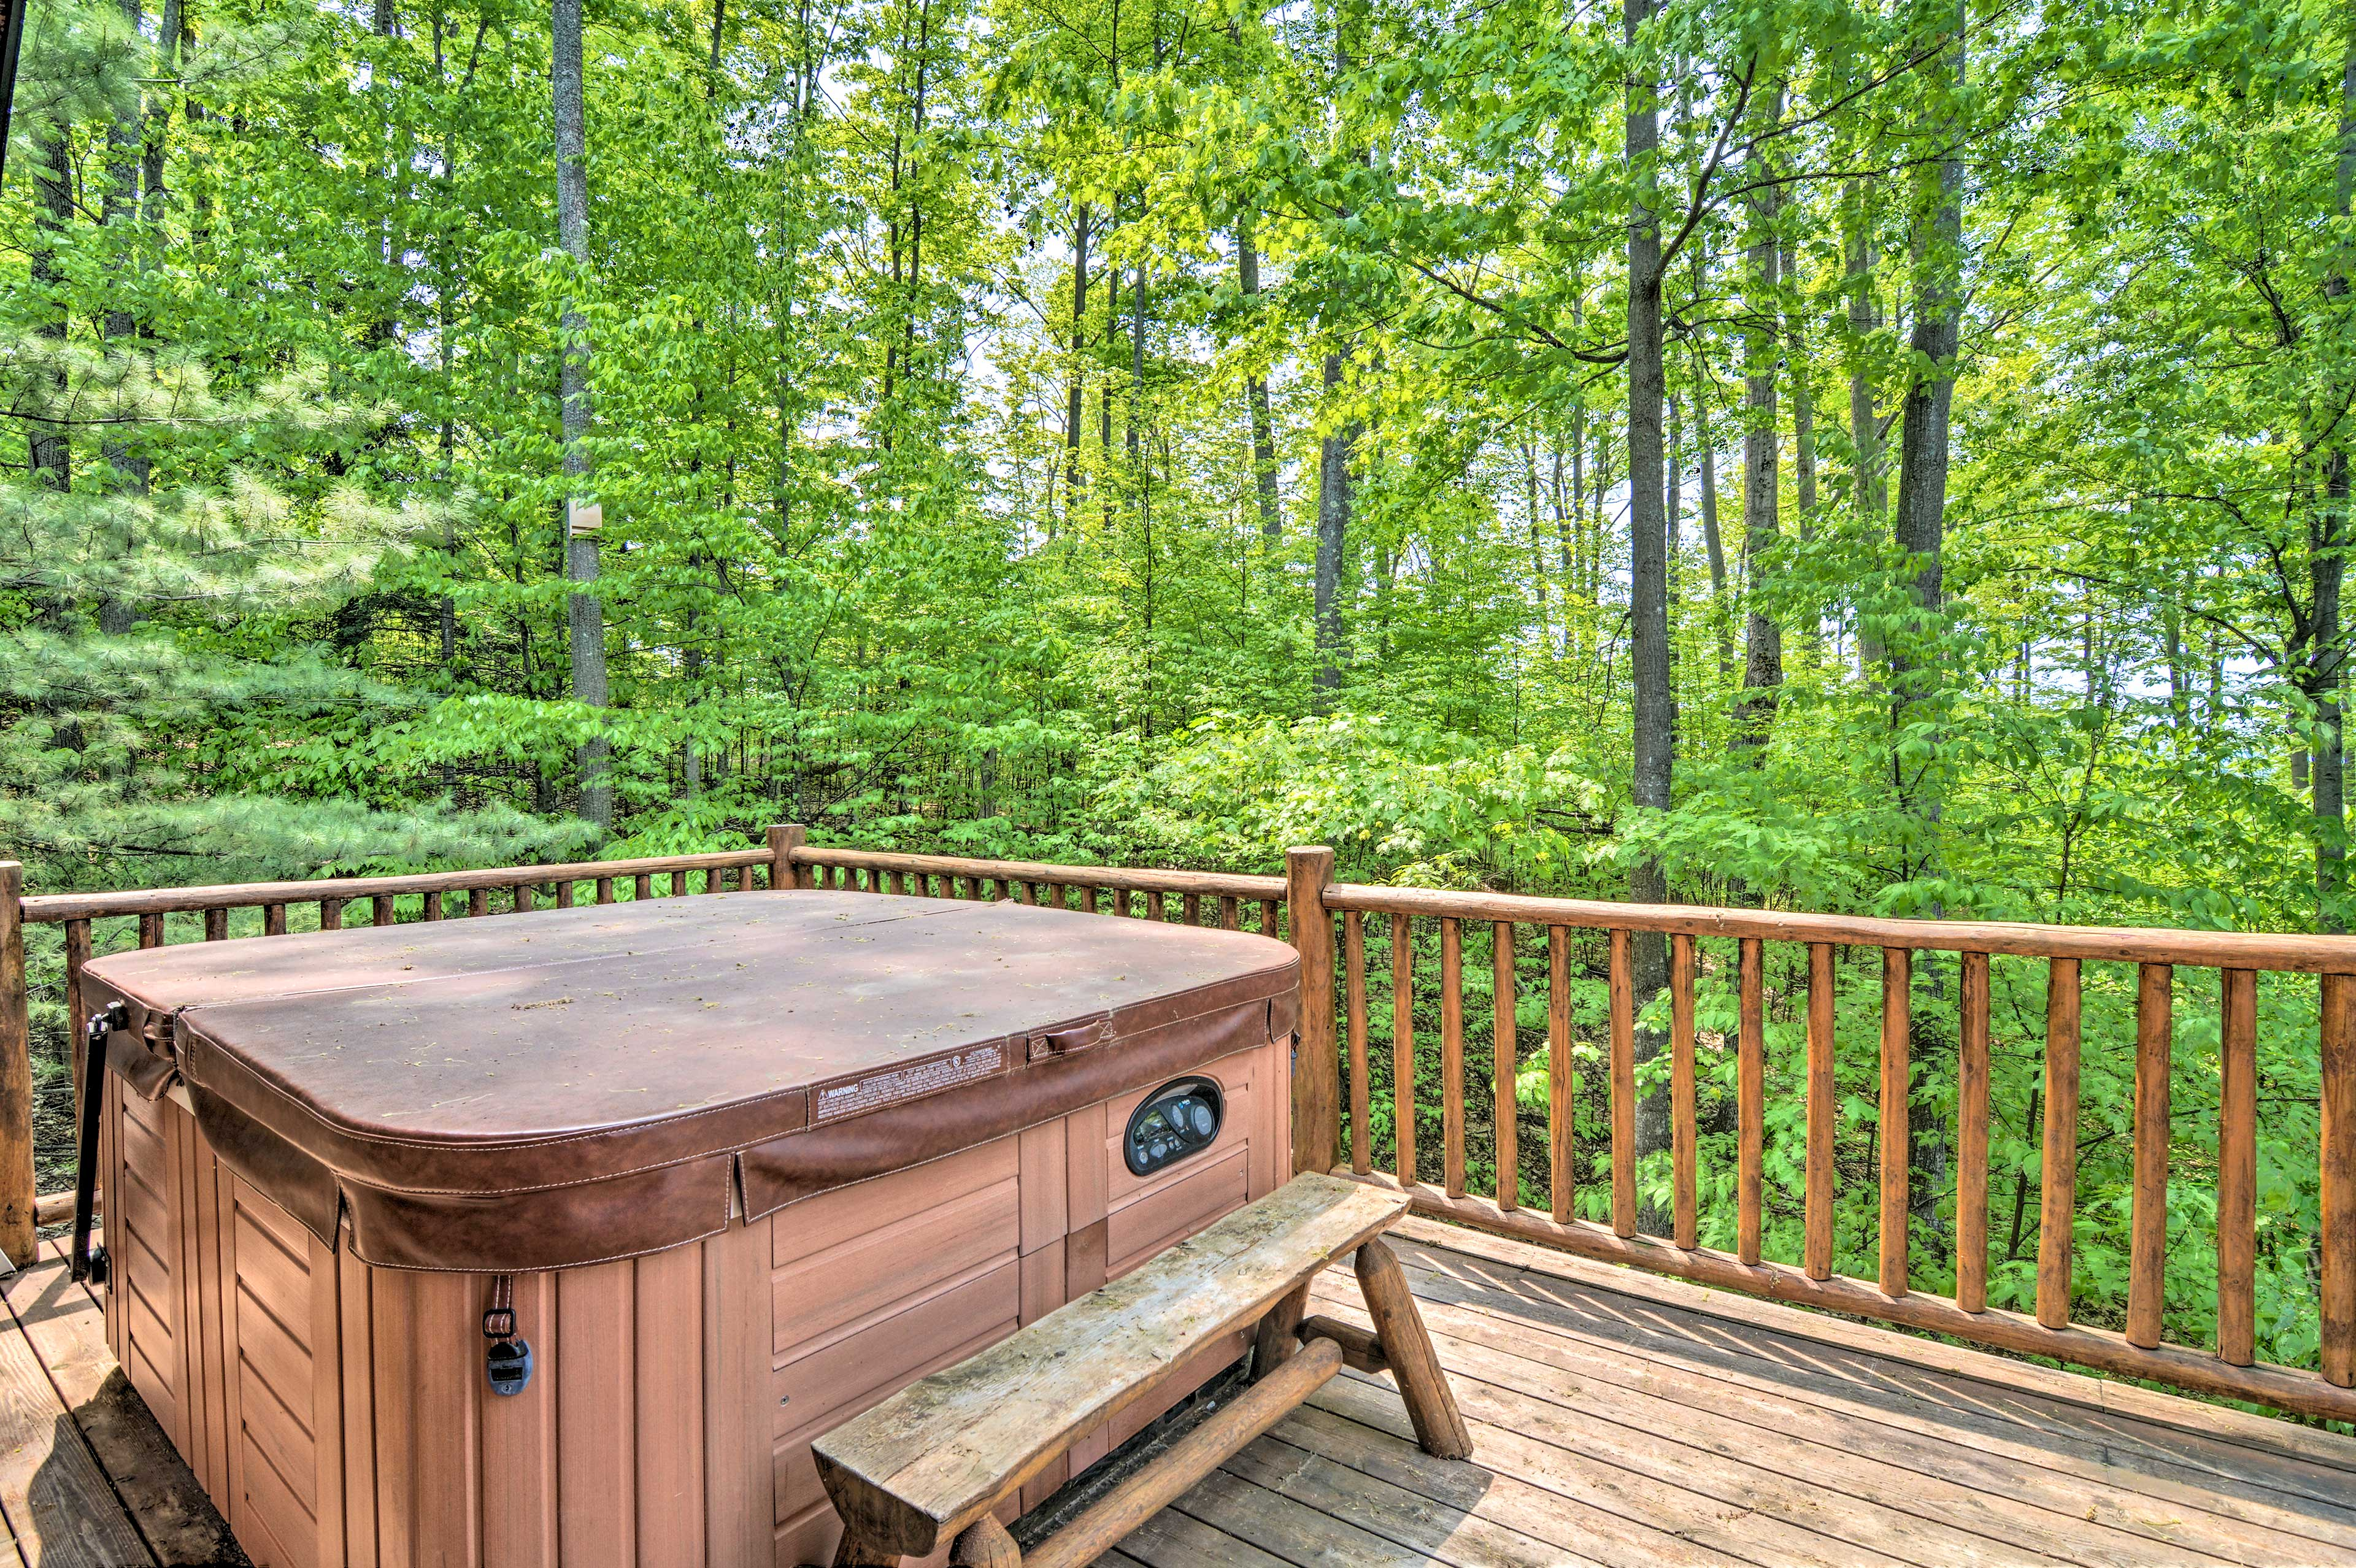 Soak in the forest views from the private hot tub on the back deck!